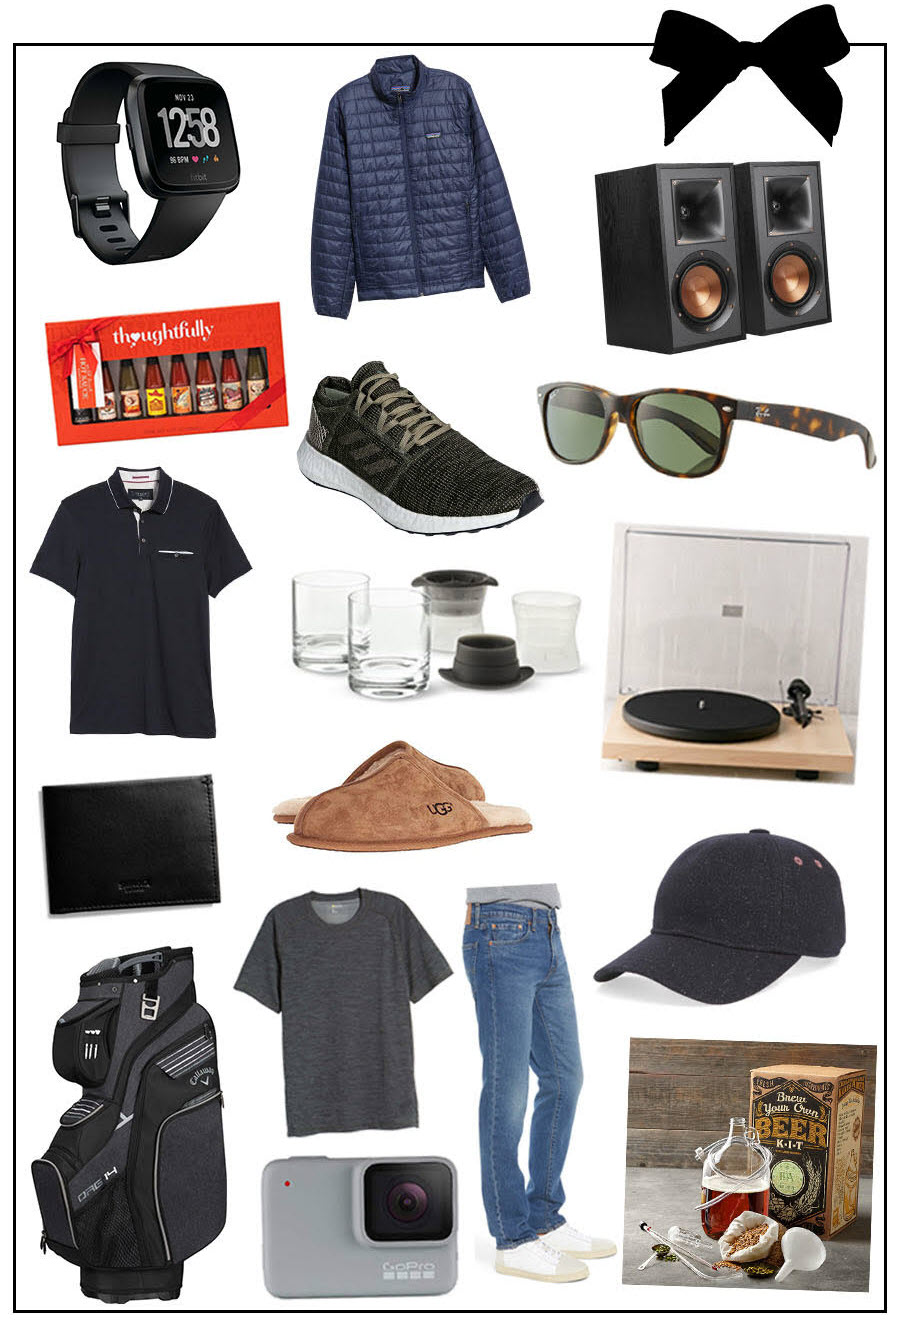 Best Gifts for Men 2018 - Christmas Gift Guide for Guys